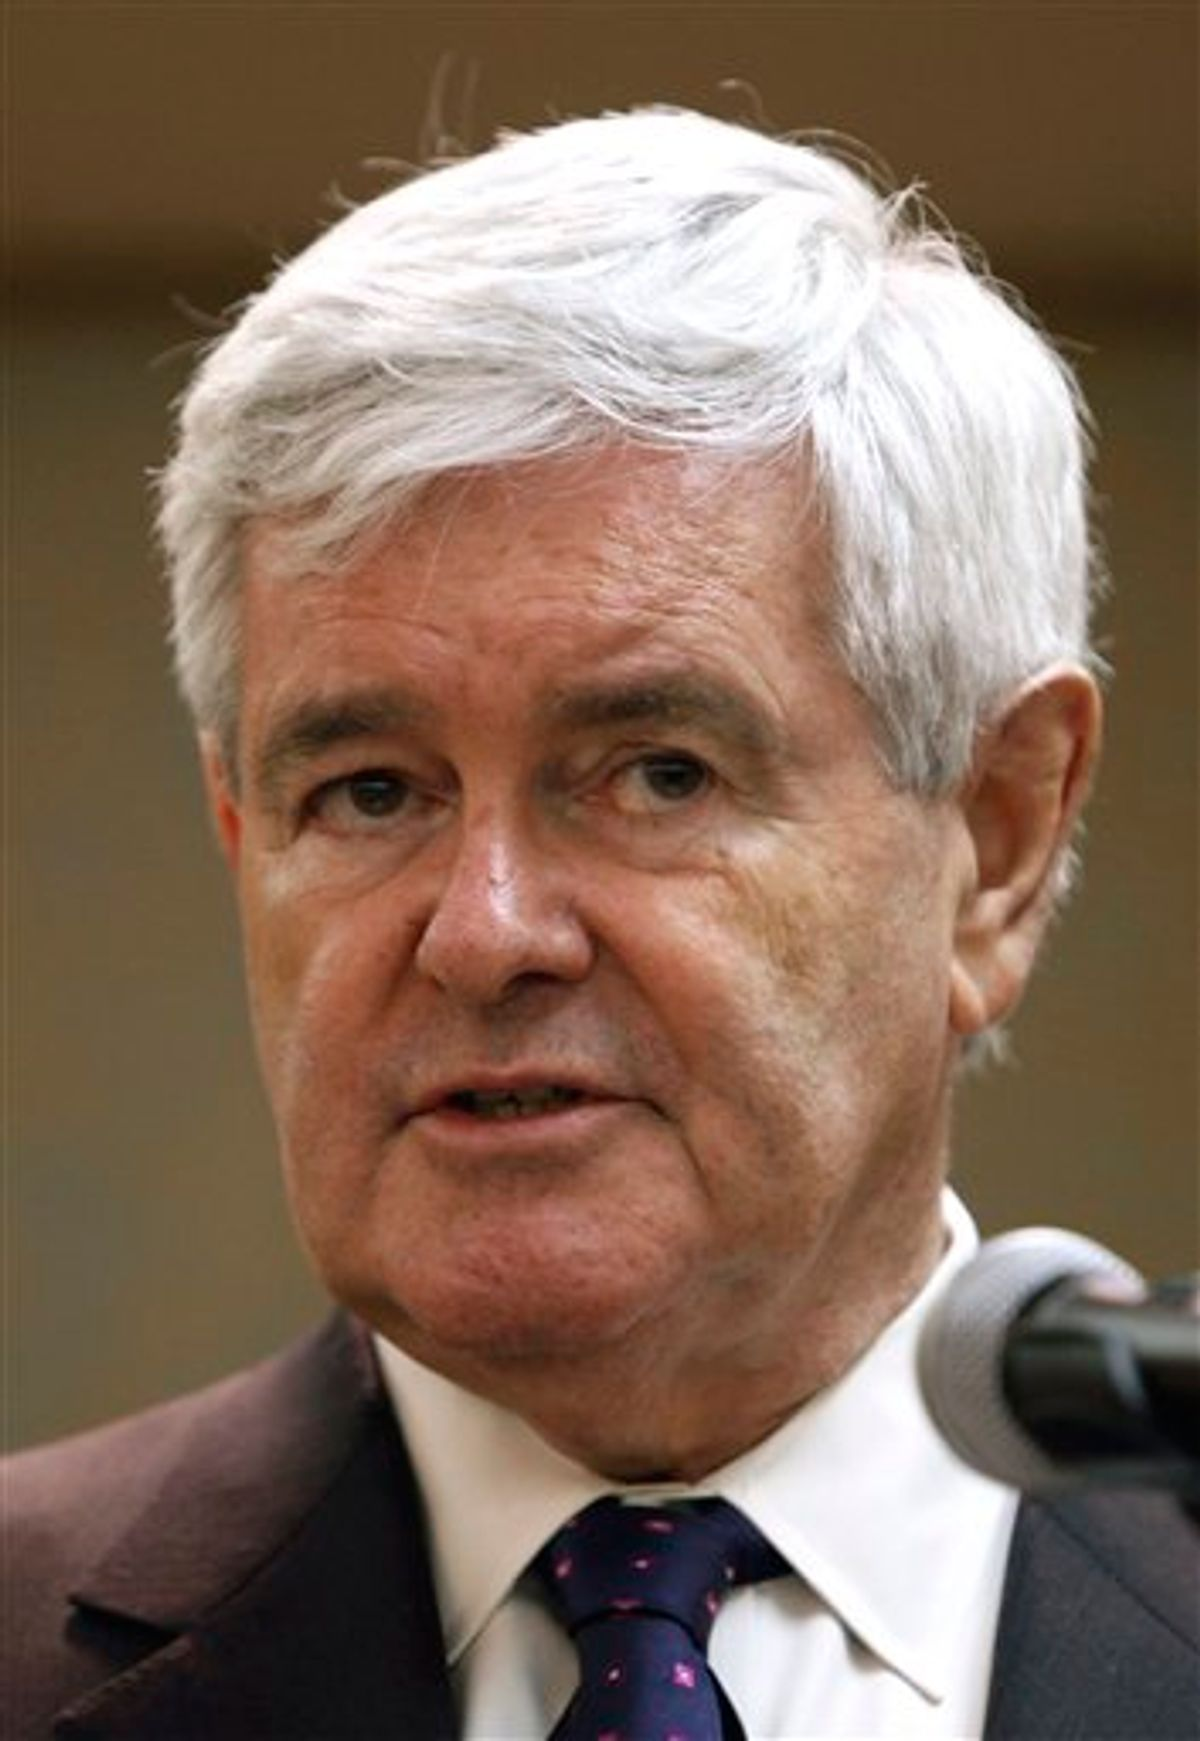 FILE - In this May 16, 2011 file photo, former House Speaker Newt Gingrich speaks during the Kiwanis Club luncheon in Dubuque, Iowa. For Republicans who once supported combating global warming, the race for the presidency is already getting hot.  (AP Photo/Charlie Neibergall, File) (AP)